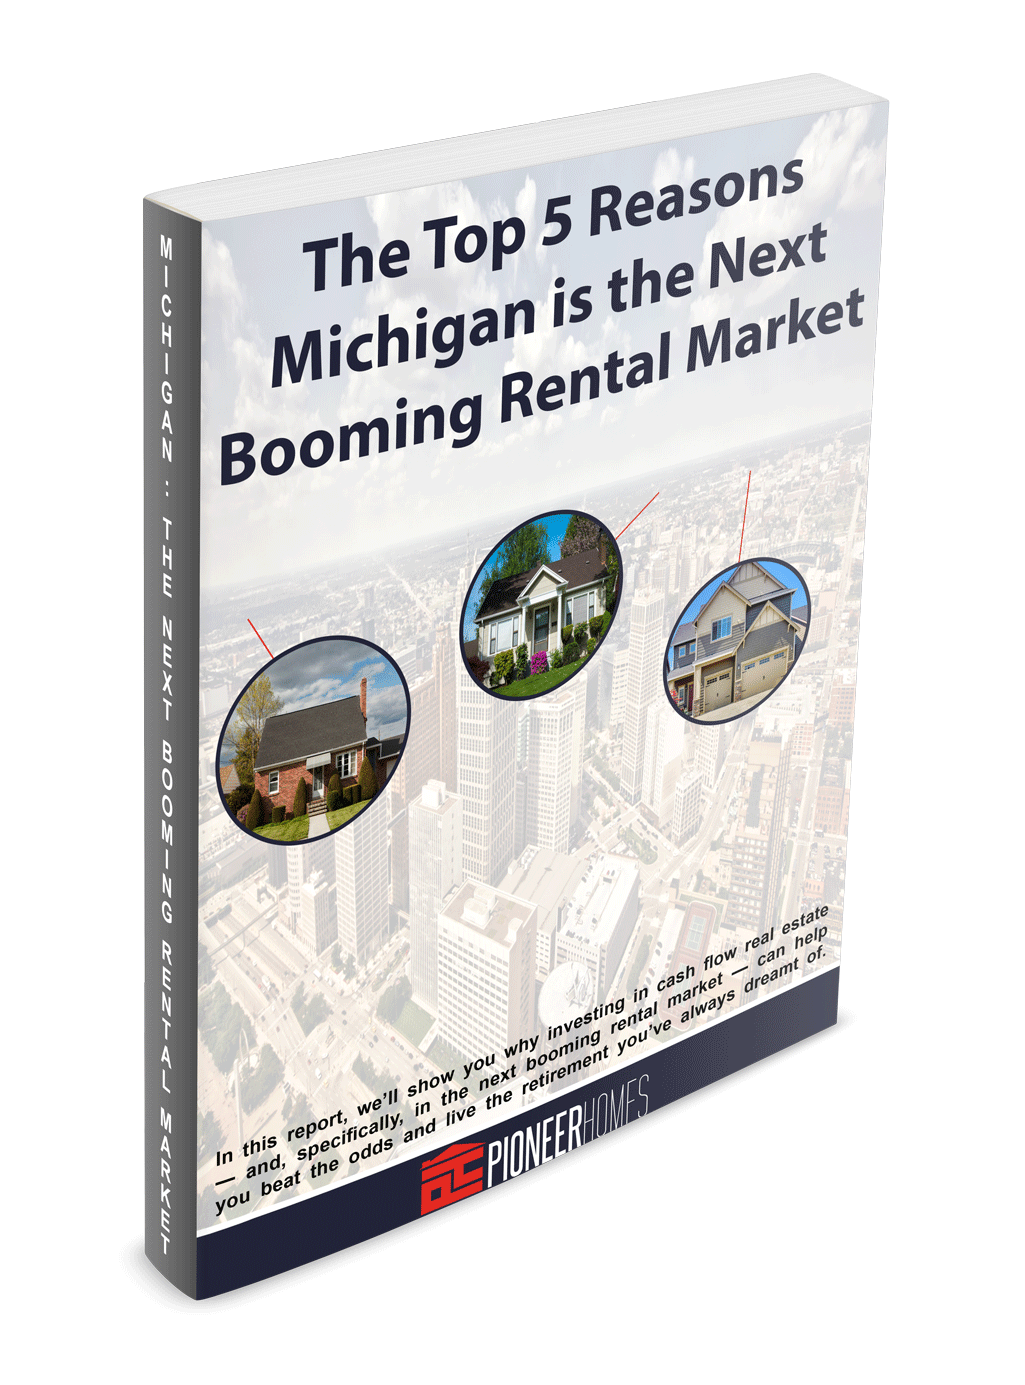 The Top 5 Reasons Michigan is the Next Booming Rental Market